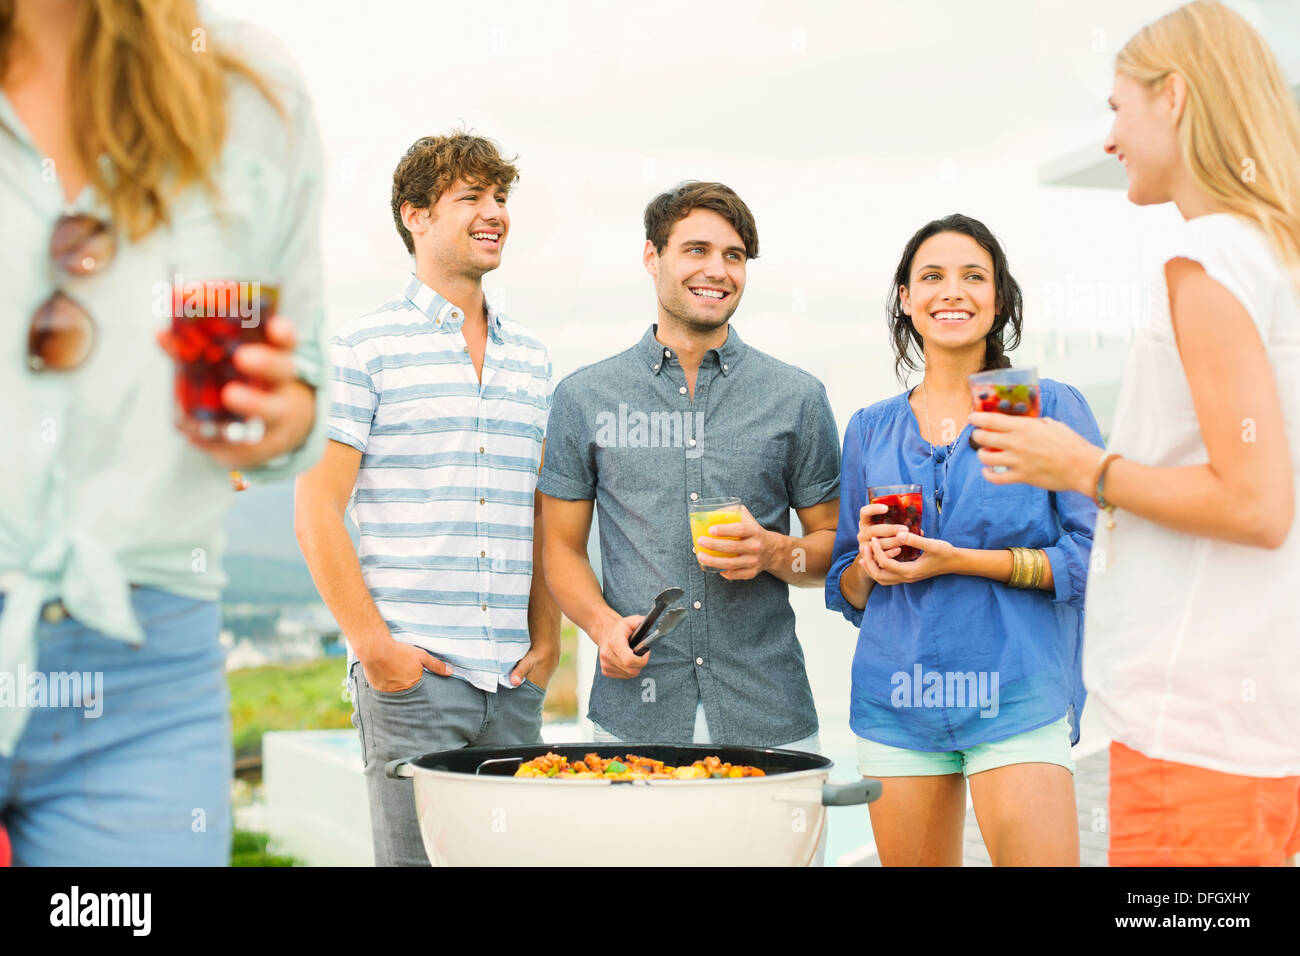 Friends enjoying drinks at barbecue - Stock Image